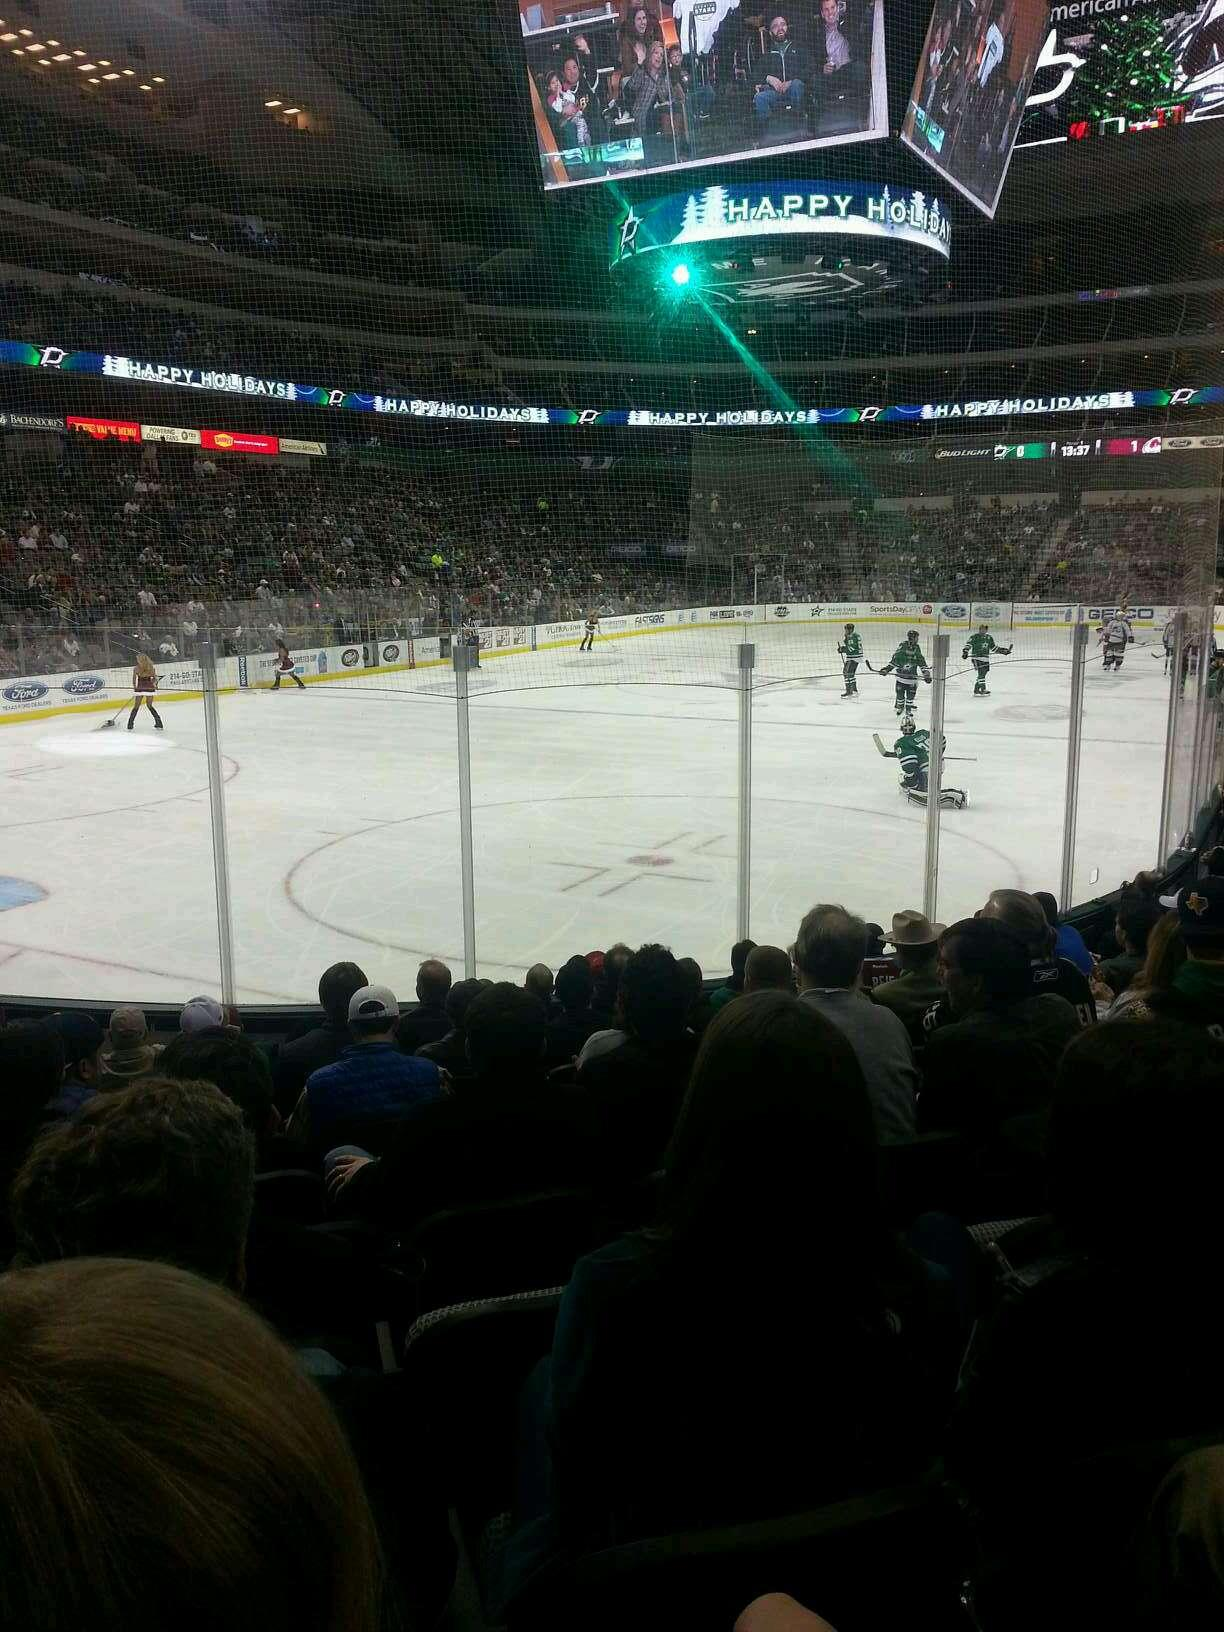 American Airlines Center Section 123 Row K Seat 7